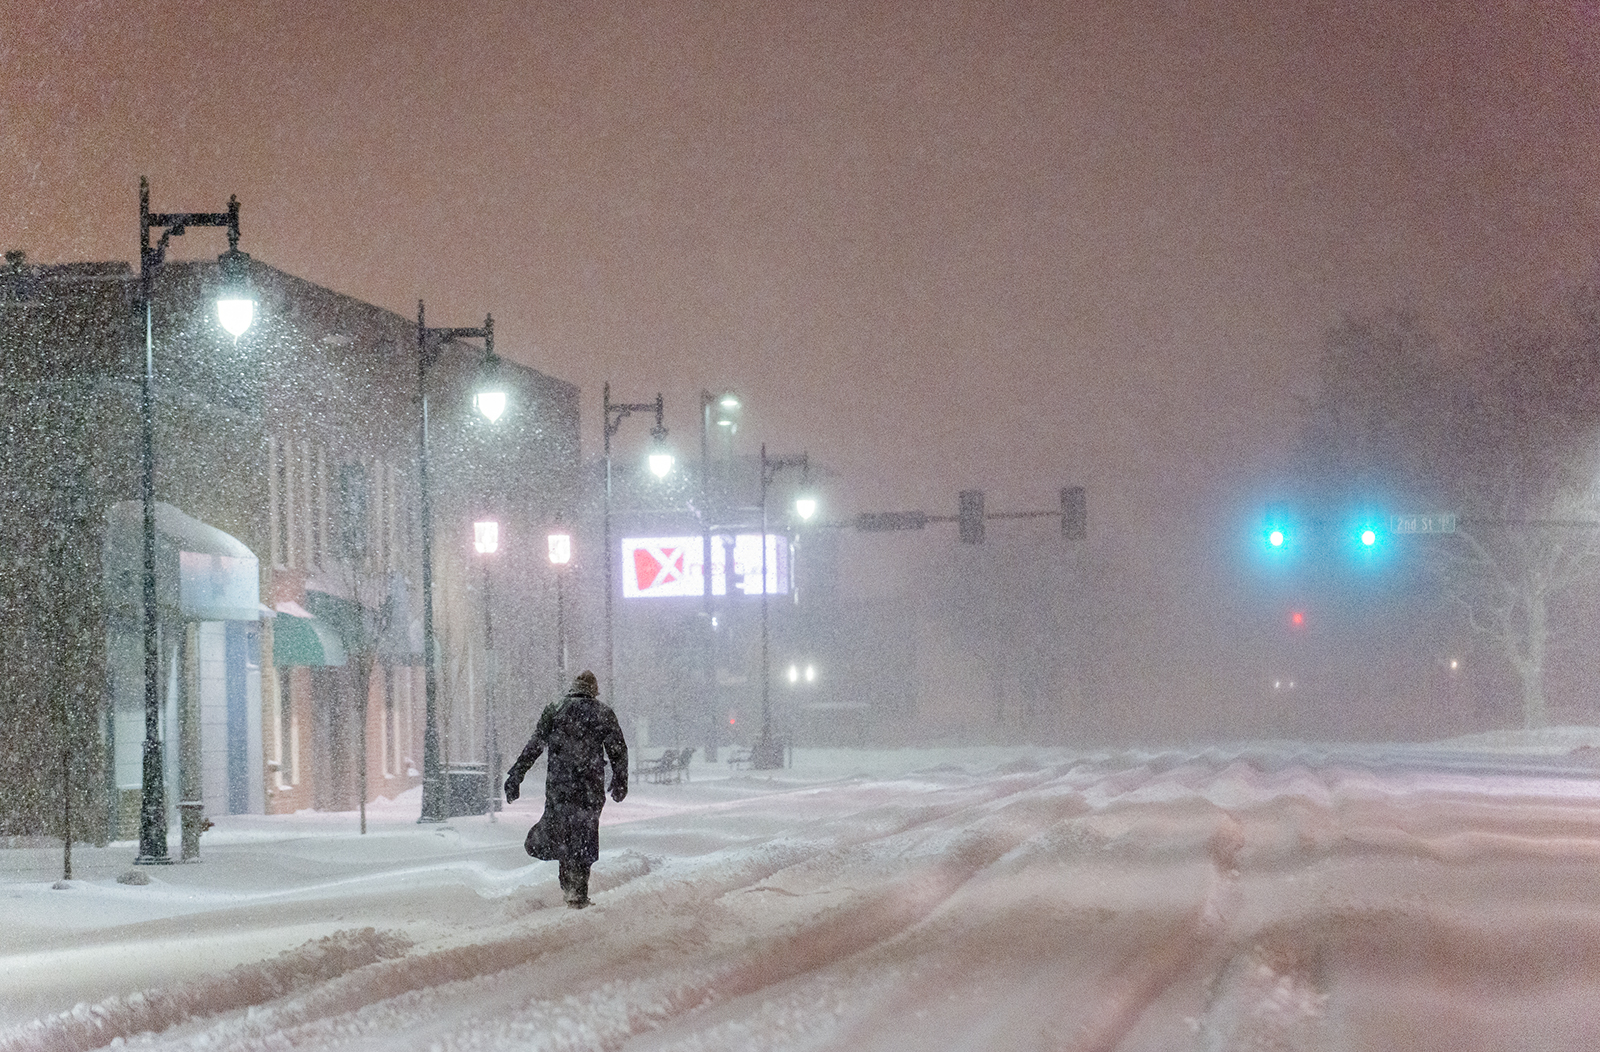 A man trudges through deep snow on his way to work during a predawn snowstorm in Wichita, Kansas on February 21, 2013.